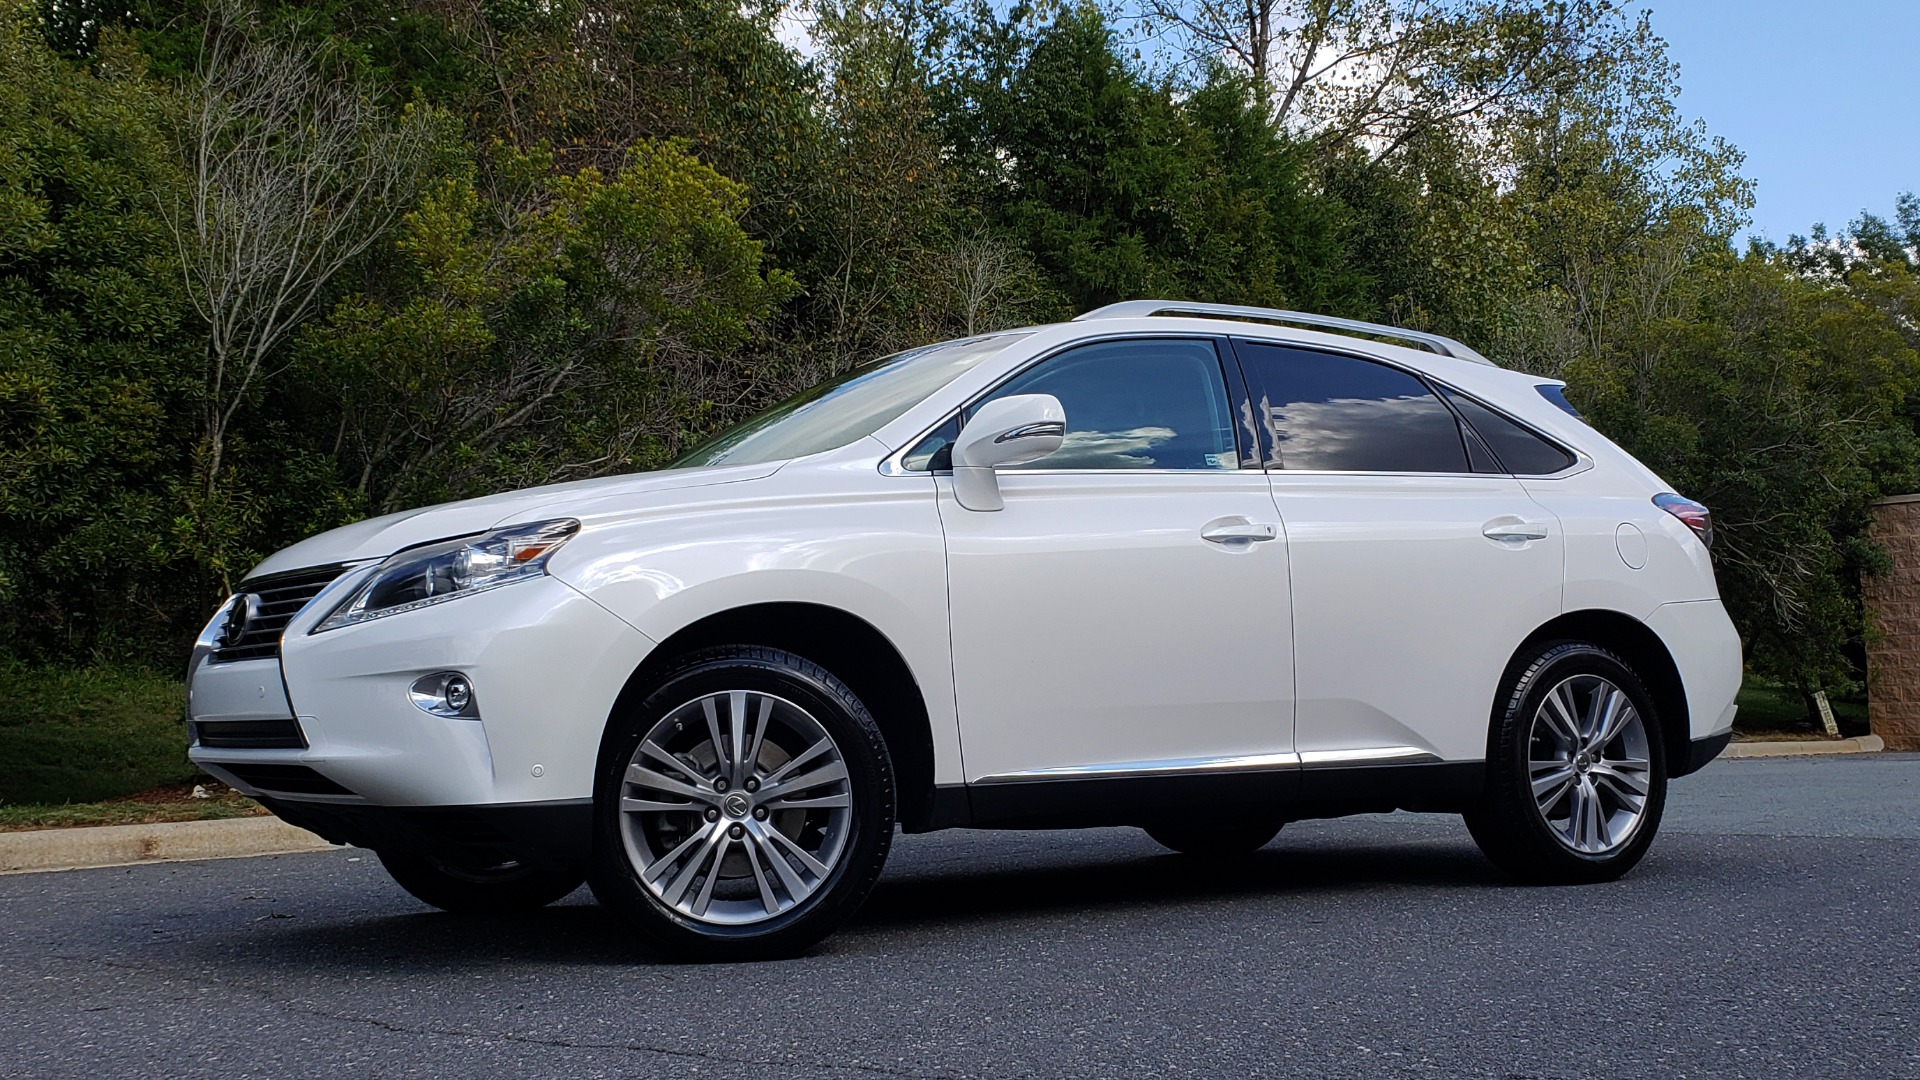 Used 2015 Lexus RX 350 PREMIUM PKG / COMFORT PKG / NAV / SUNROOF / BSM / TOWING for sale Sold at Formula Imports in Charlotte NC 28227 1